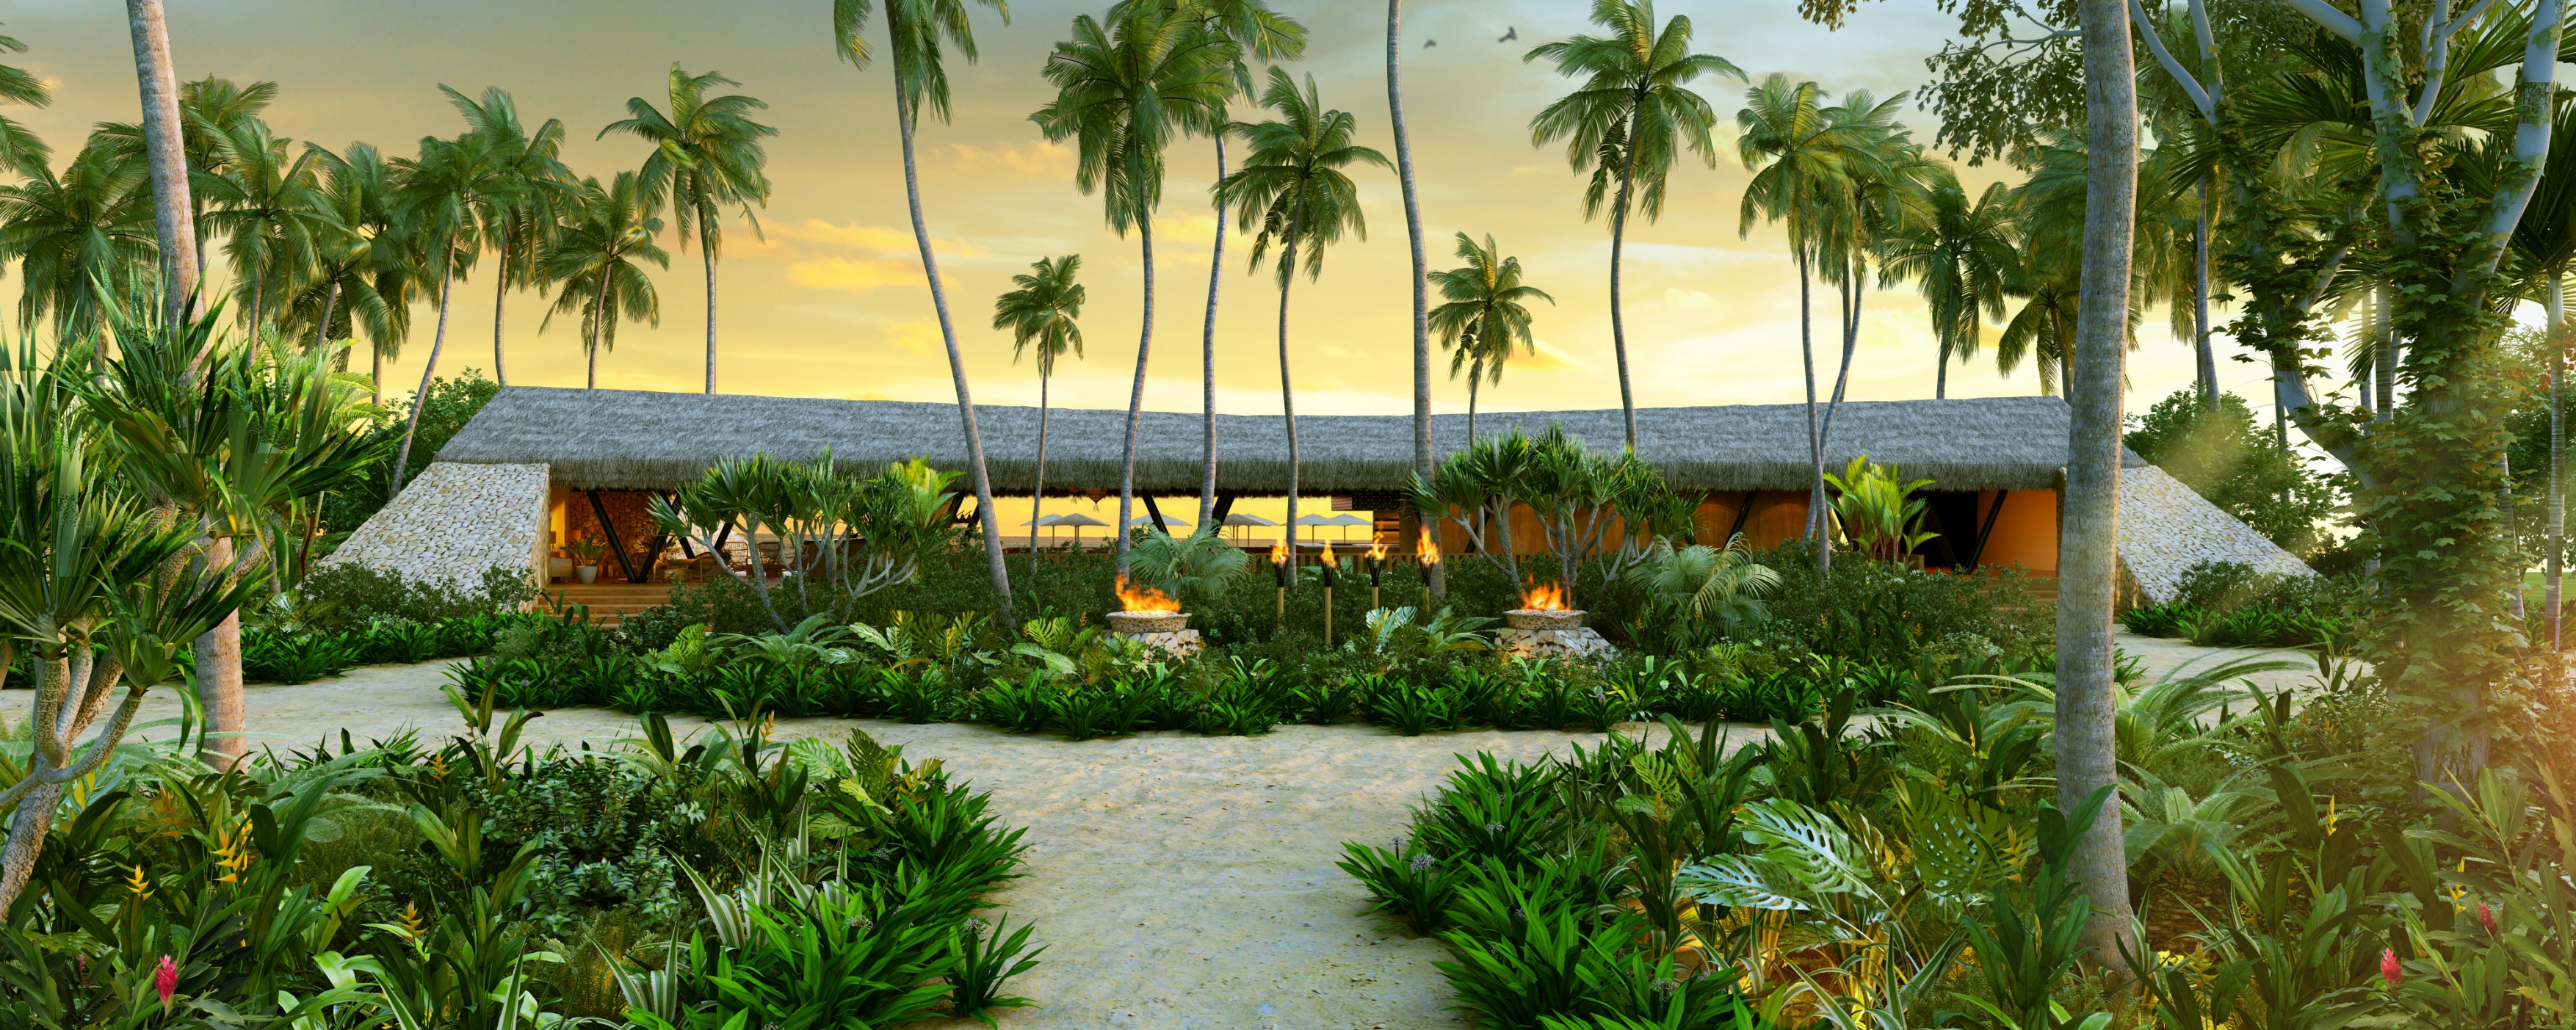 50 New Hotel Openings For 2018 | Australia-Oceania | Six Sense Fiji – Island of Malolo, Fiji